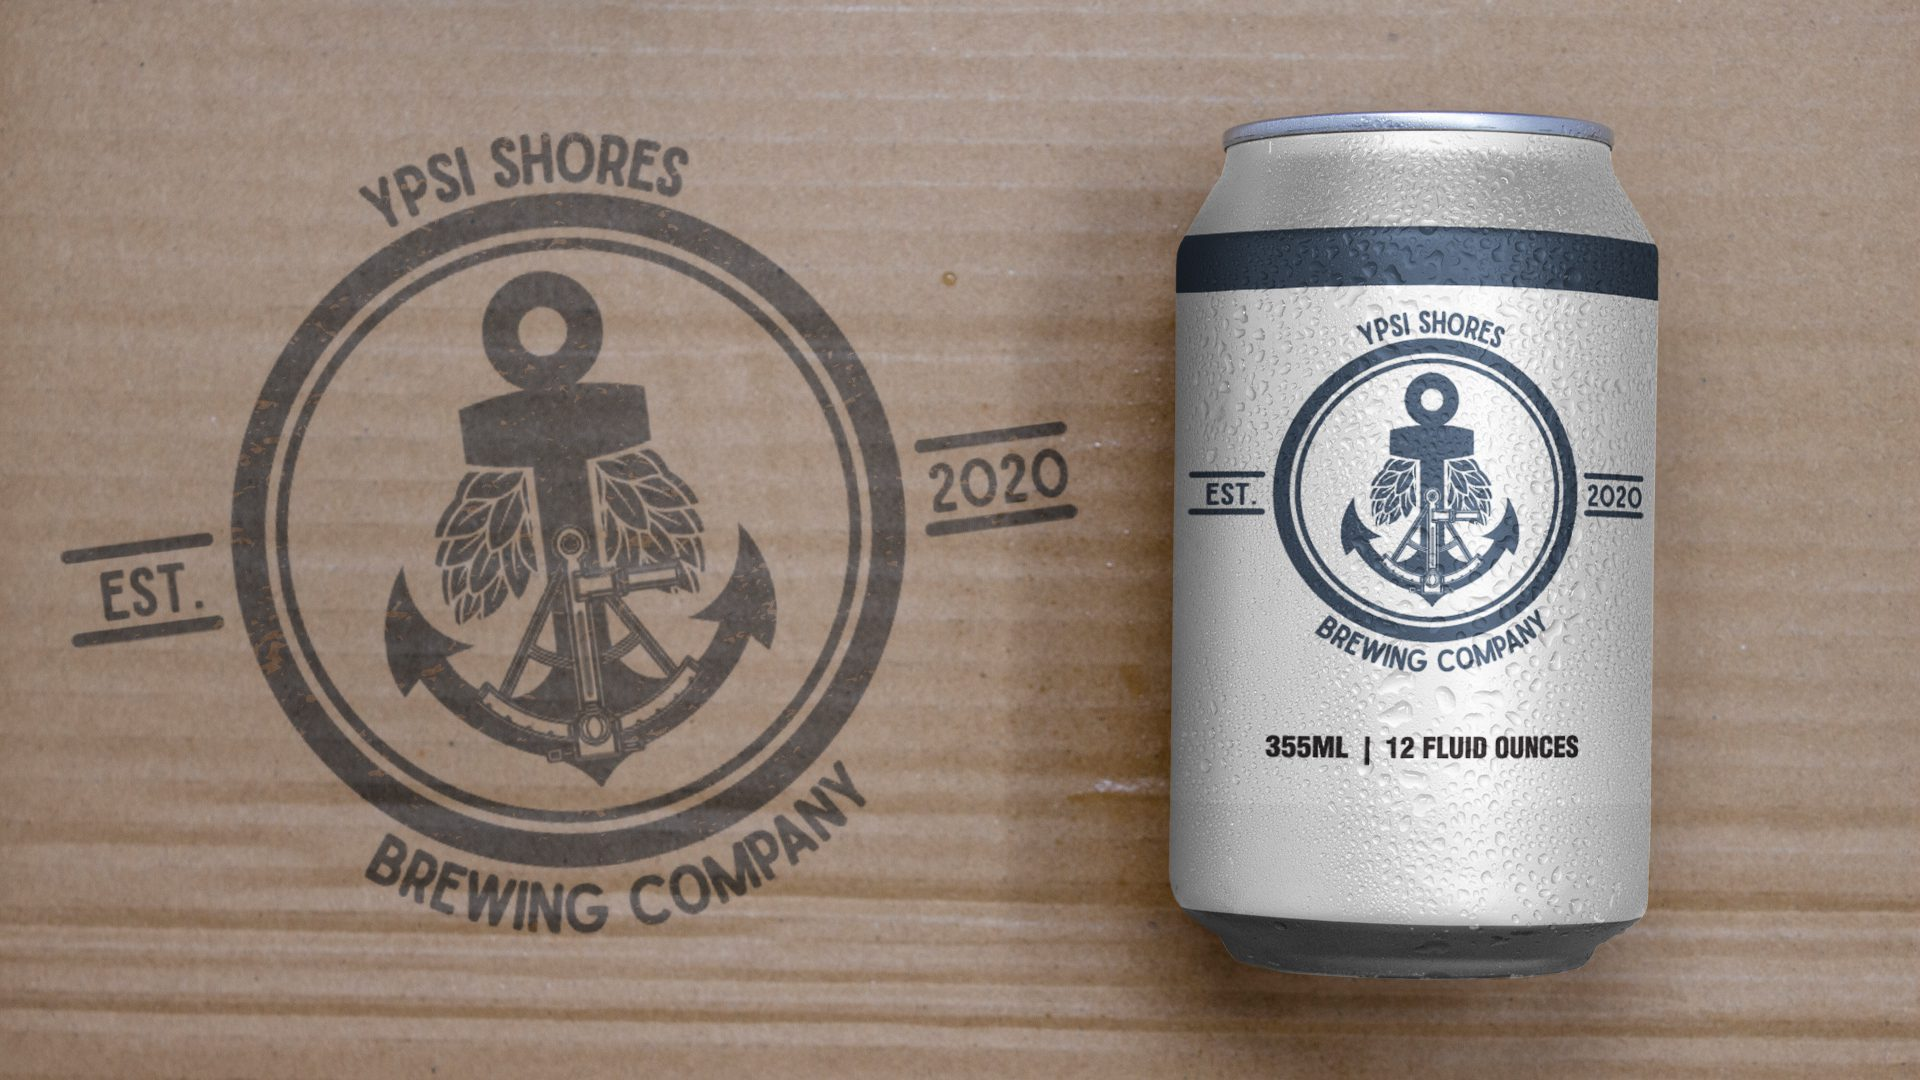 Ypsi Shores Brewing - 16 oz Can Label Mockup 01